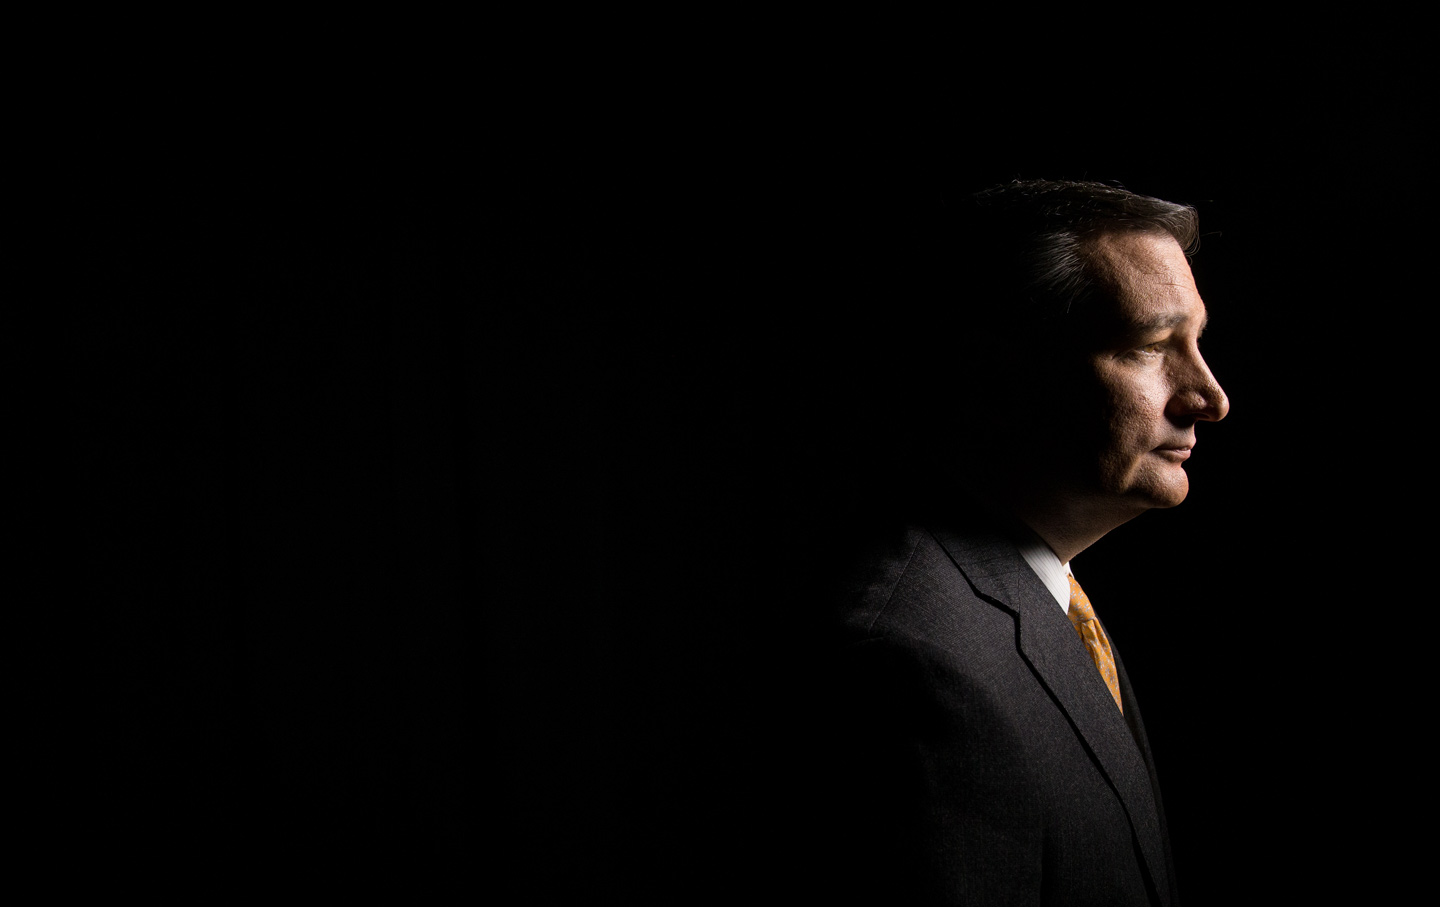 ted_cruz_portrait_ap_img